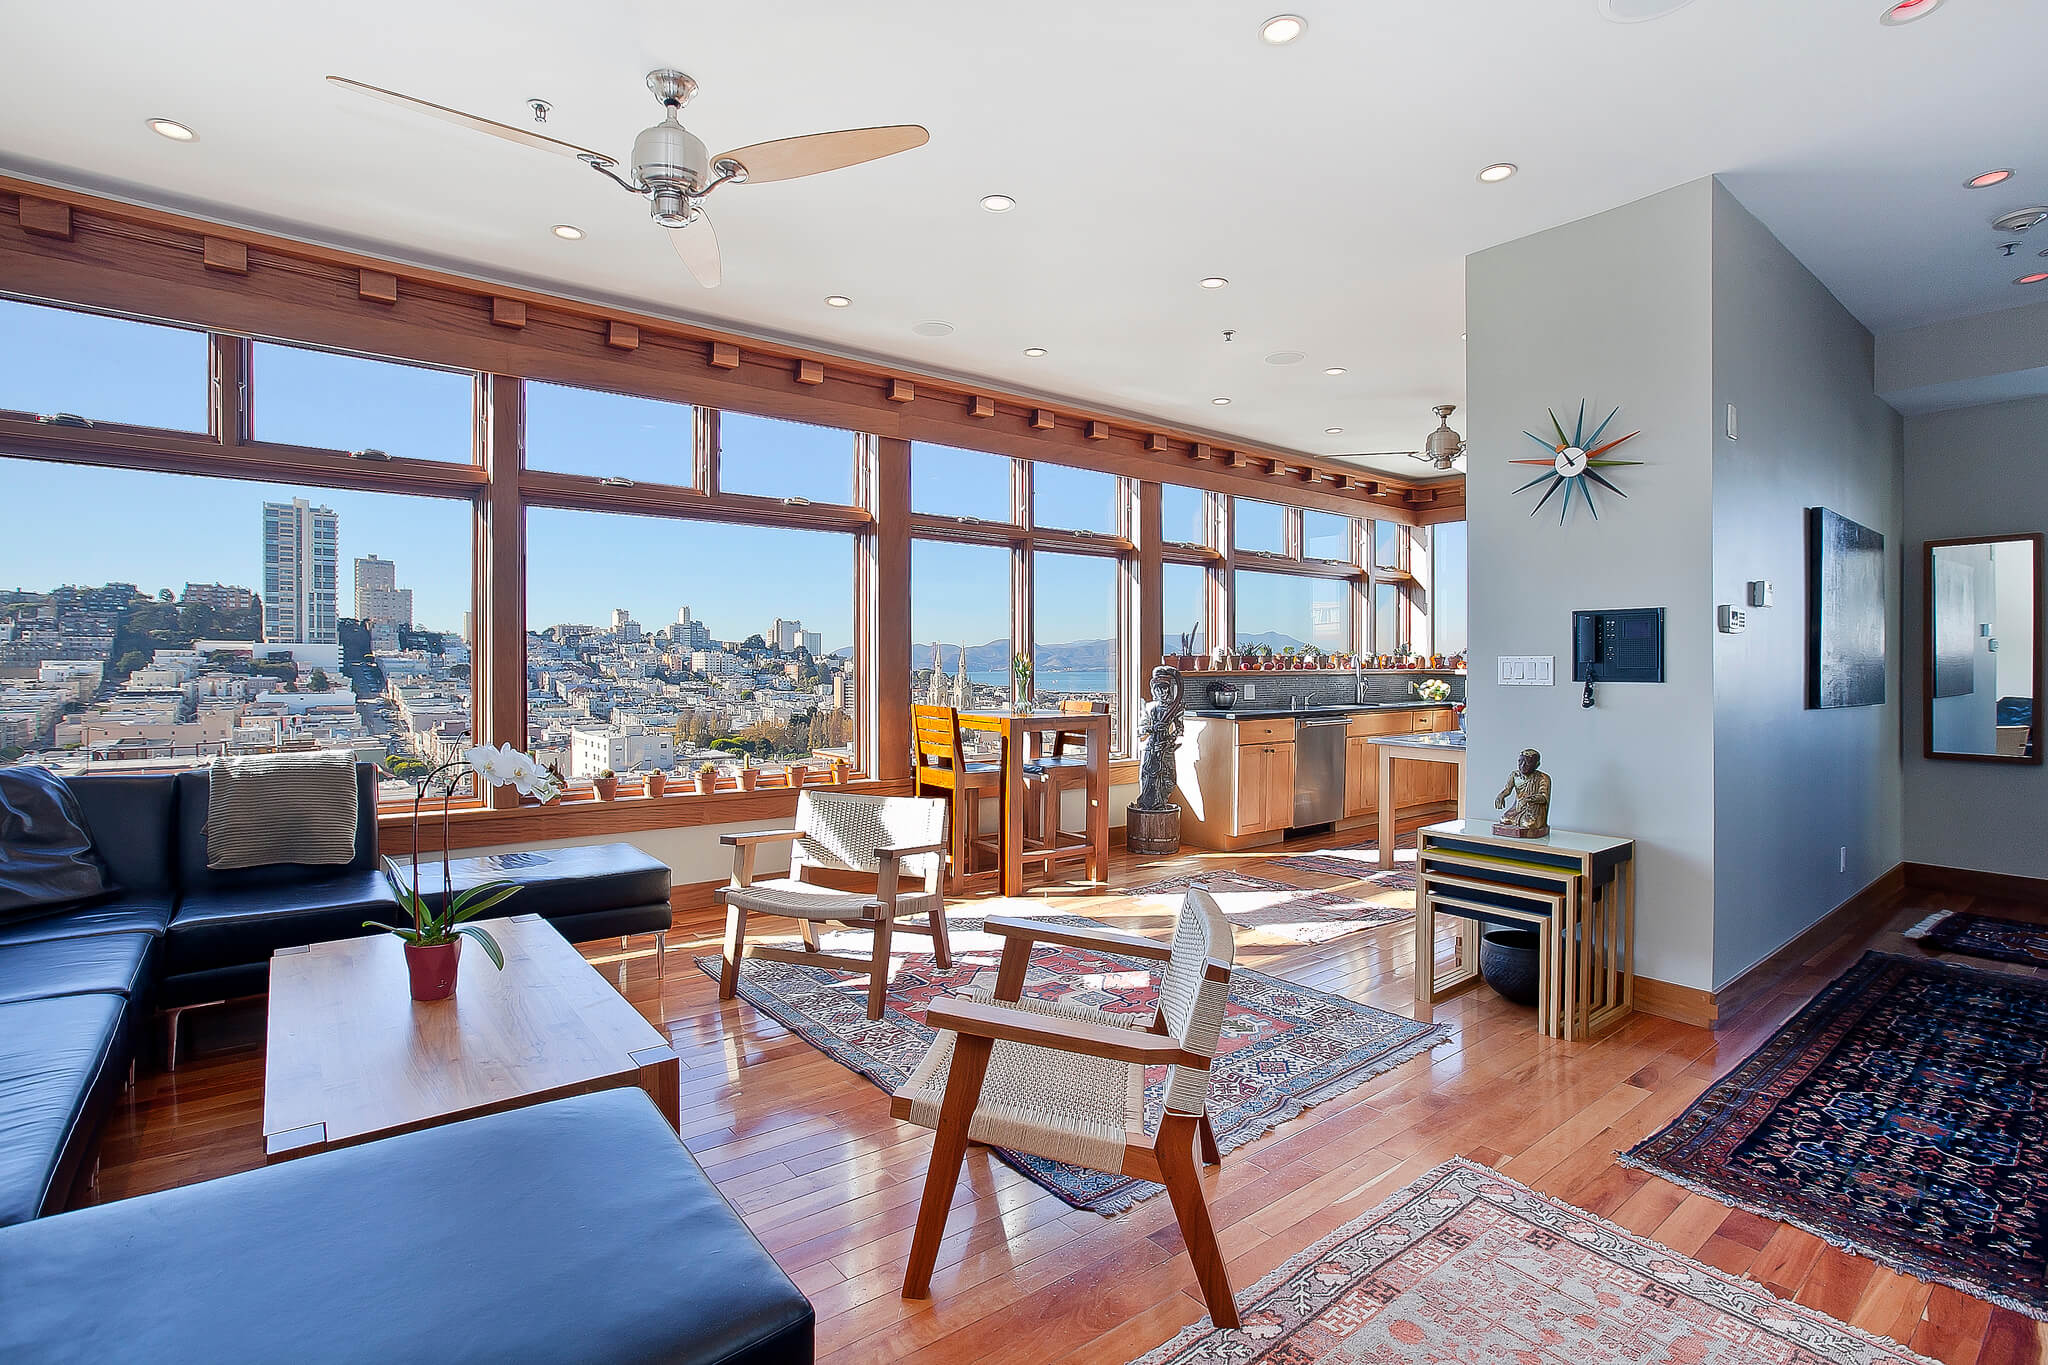 hosting property on Airbnb